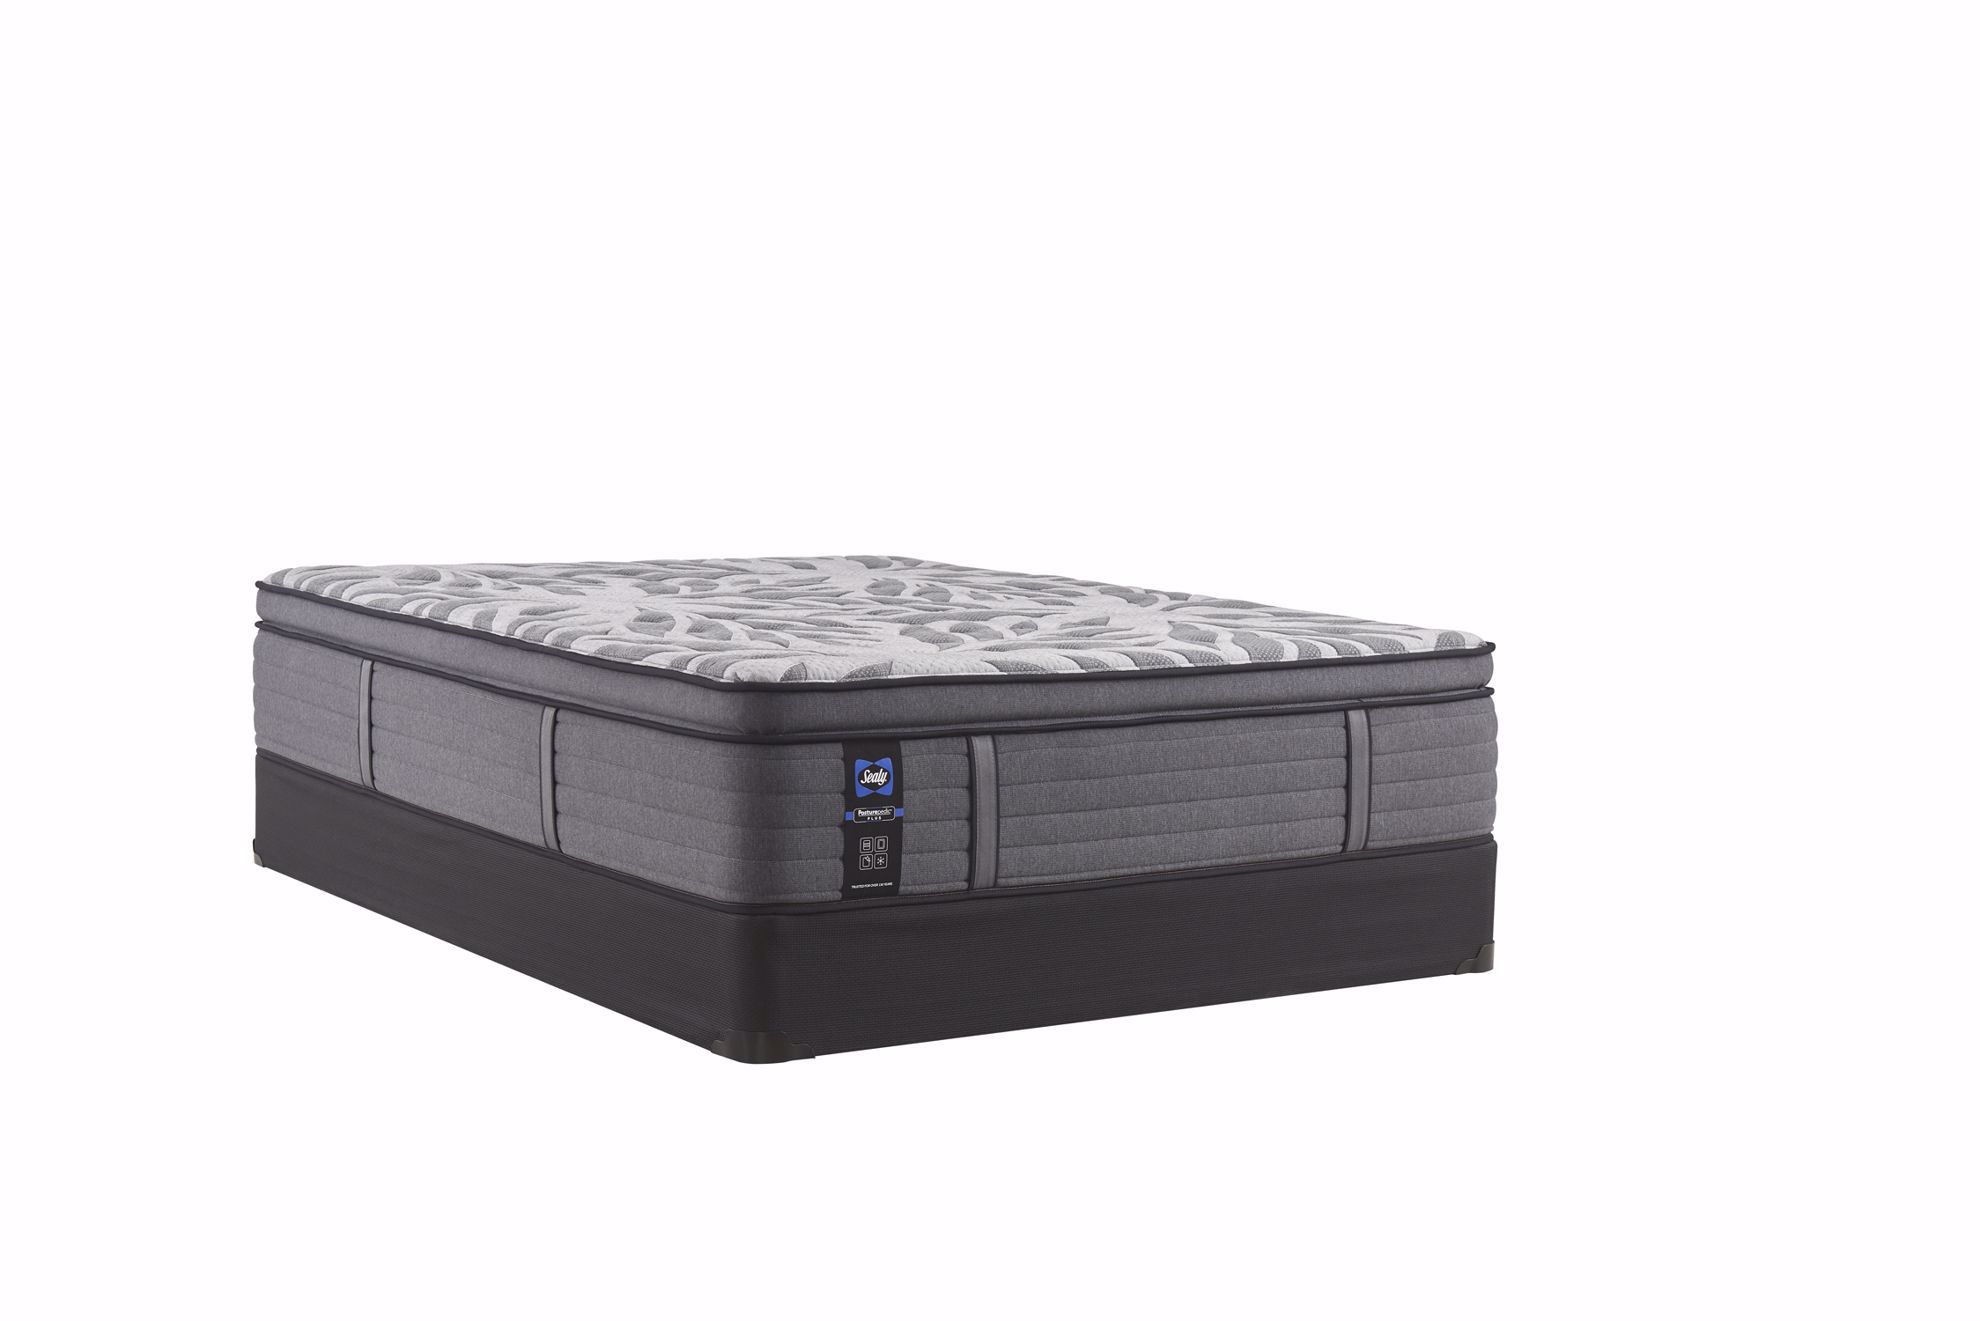 Picture of Sealy Posturepedic Plus Satisfied Plush Pillowtop Twin Mattress Set